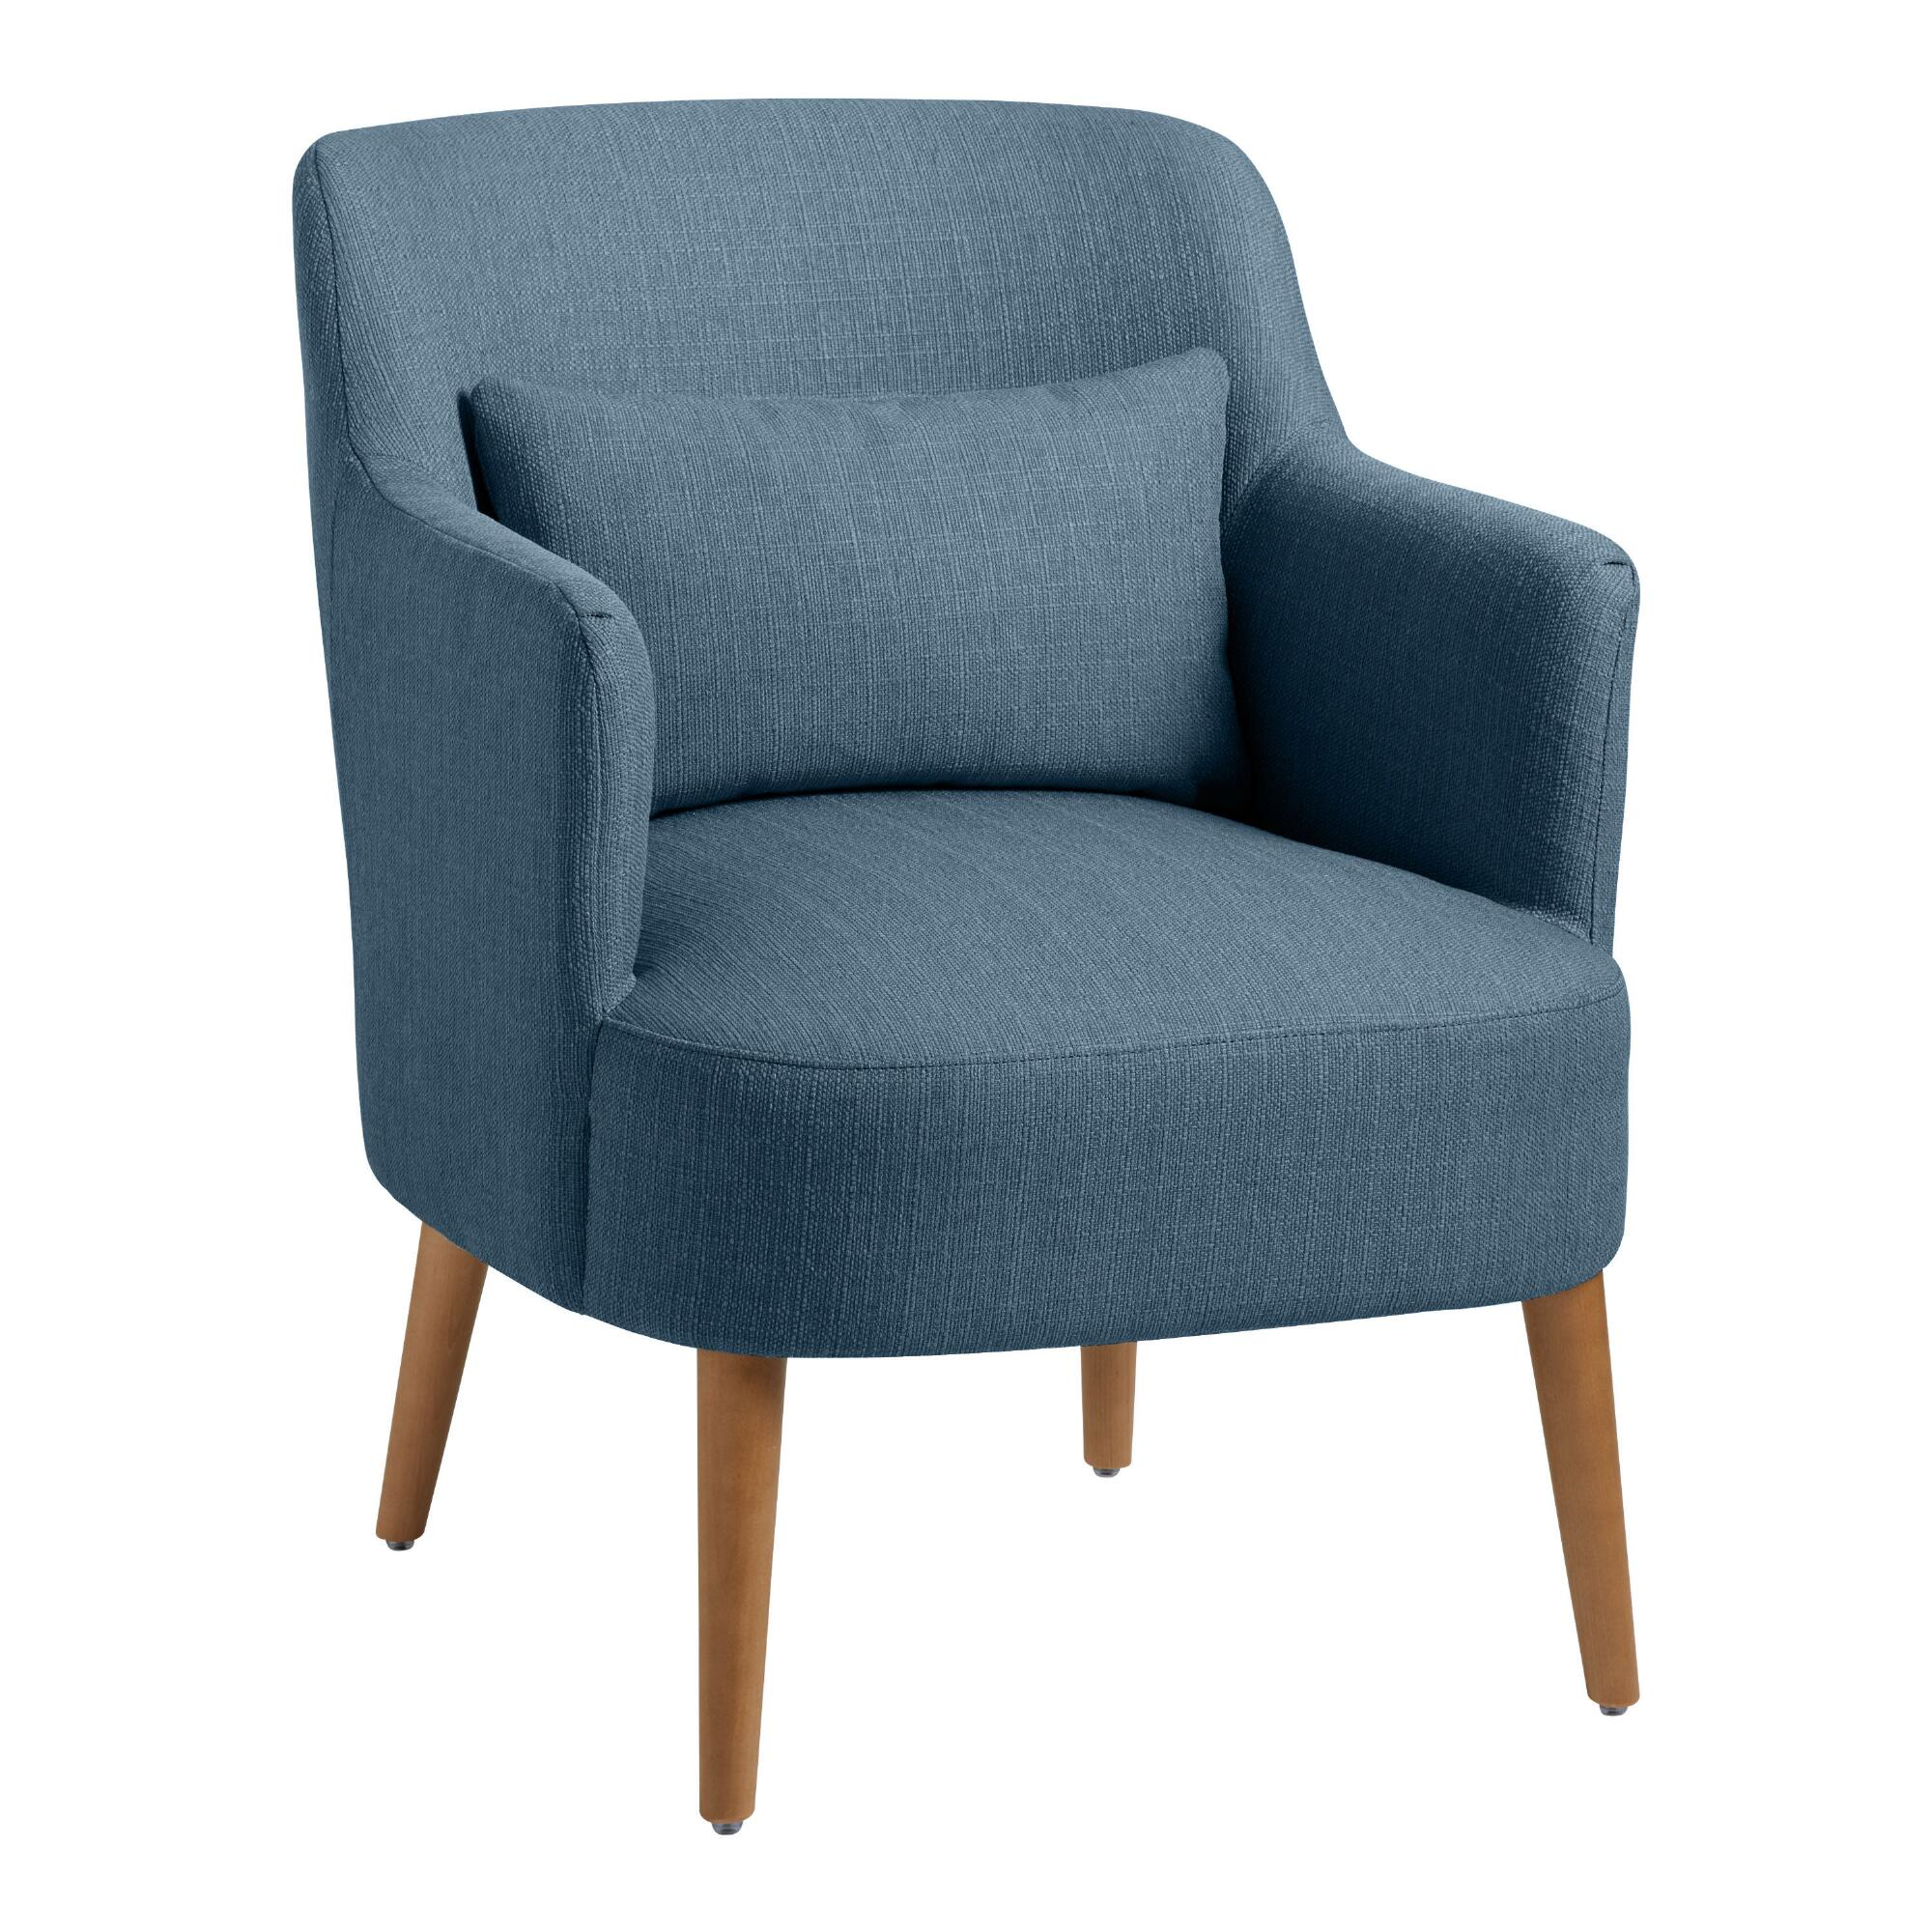 Modern Emery Upholstered Chair With Pillow